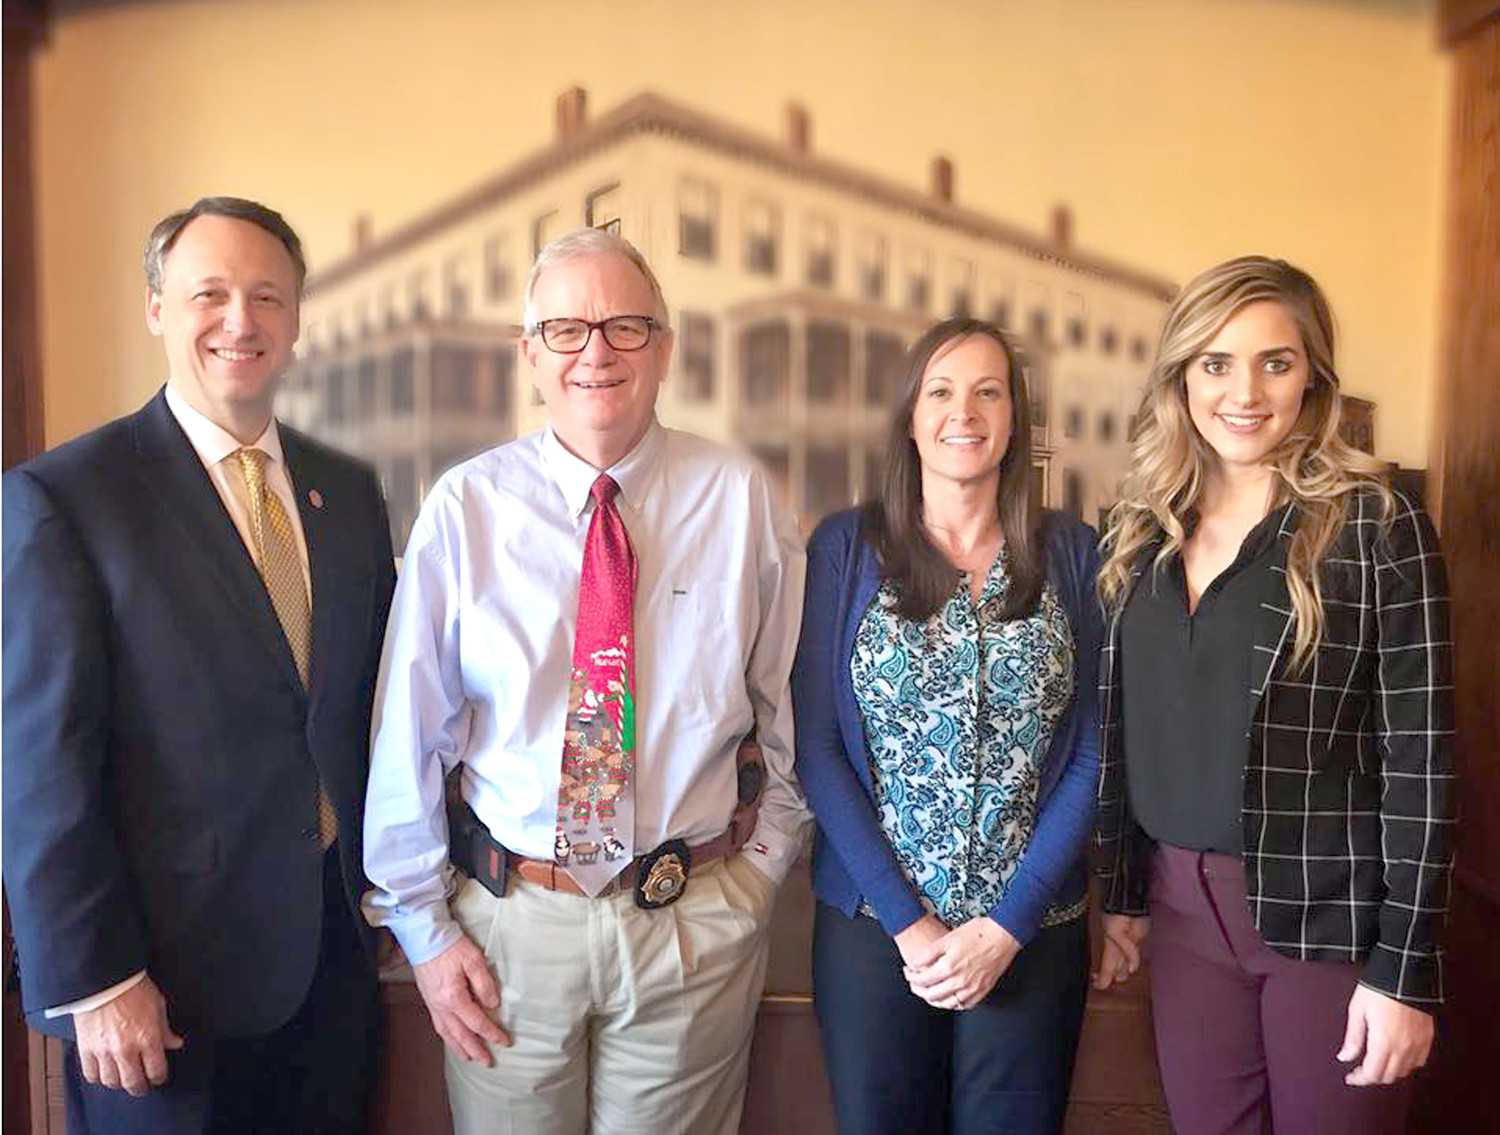 10TH JUDICIAL DISTRICT ATTORNEY GENERAL Steve Crump, left, has announced three new staff members to his office. They include, from left, Tony Isom, Amy Argauer and Coty Wamp.